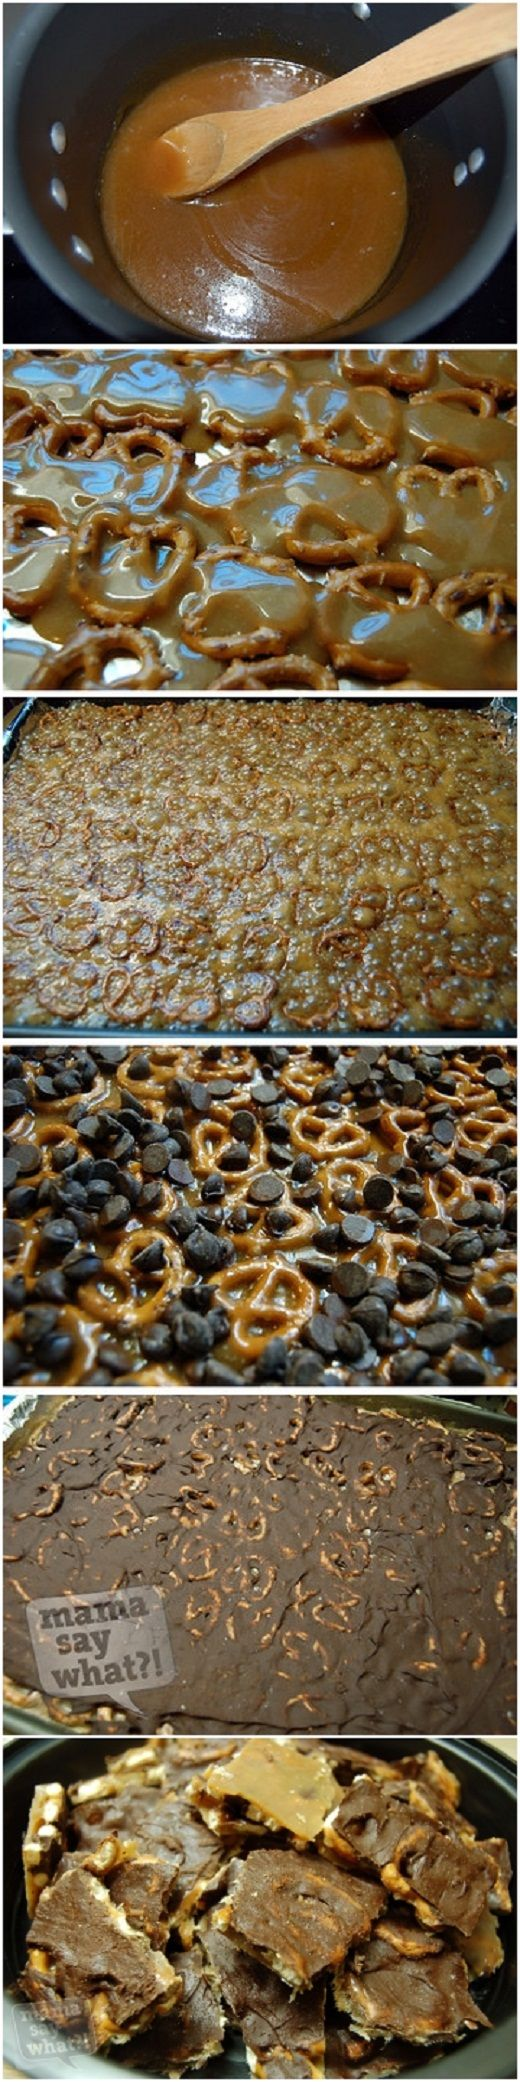 Salted Caramel Pretzel Bark ½ bag of mini pretzel twists  2 sticks of butter (1 cup total)  1 cup of brown sugar  1 bag of chocolate chips (2 cups)  Sea salt or table salt